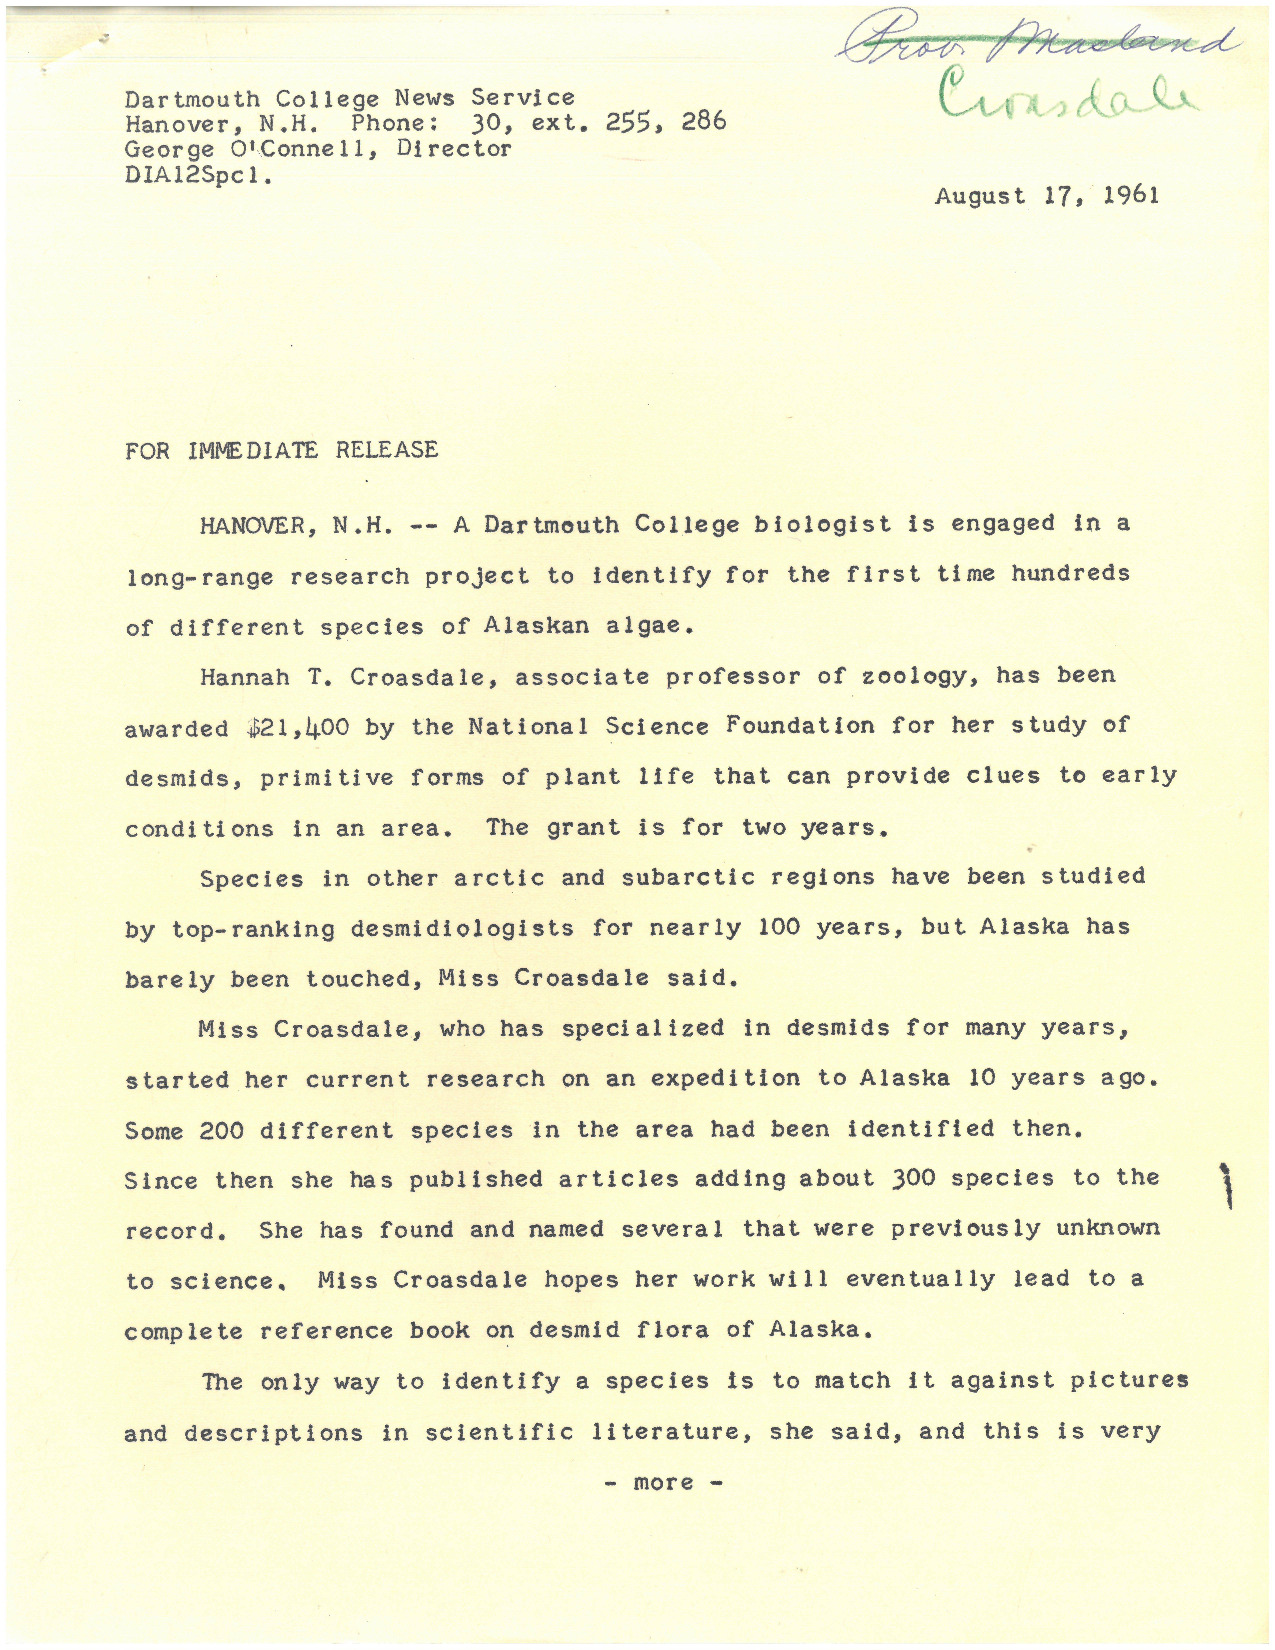 """Press release announcing that Croasdale had received a National Science Foundation grant to identify hundreds of species of Alaskan algae for the first time. At the time only a Research Assistant with rank of Assistant Professor, Croasdale was promised leave without pay by Leonard Rieser if she was able to procure this grant. Seven years later, Croasdale would remark that """"everything has gone pretty well since [getting the grant]."""""""